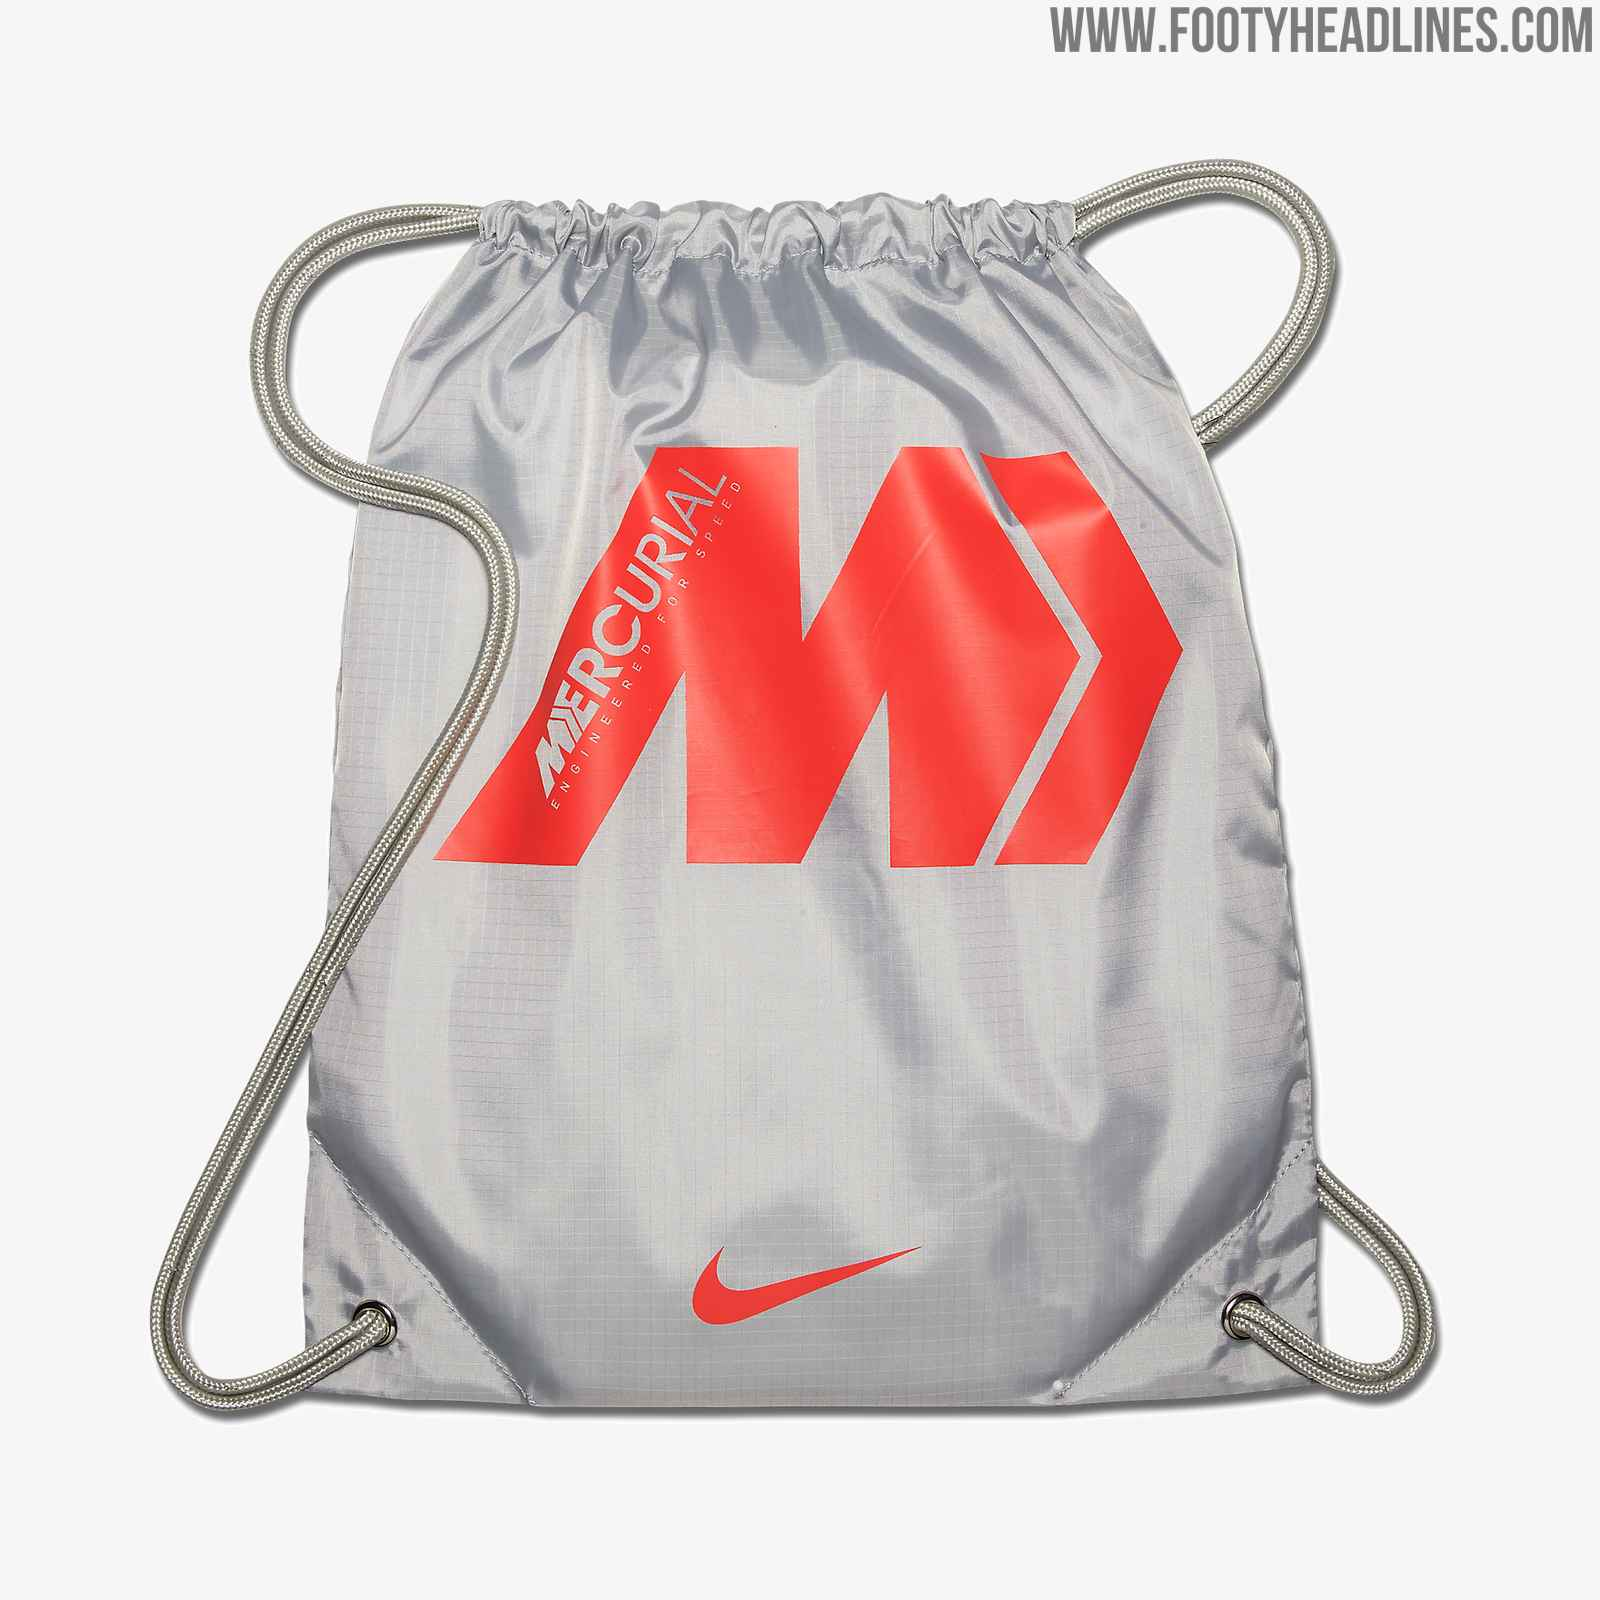 71d178a6c Silver Nike Mercurial Superfly 360  Raised on Concrete  2018-2019 ...